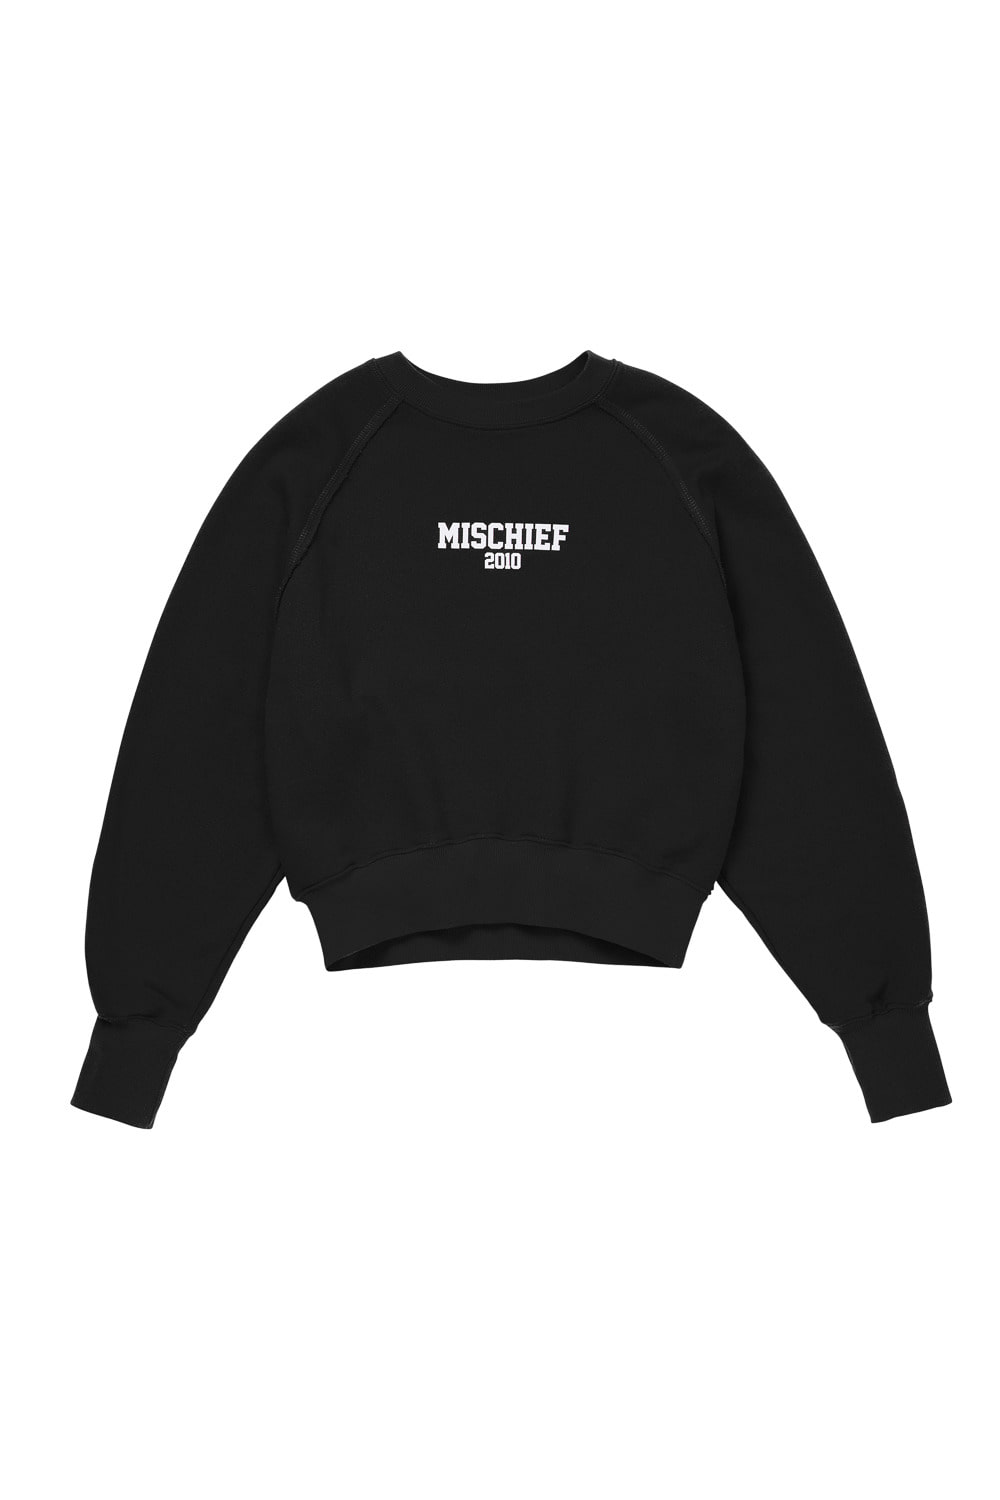 MSCHF 2010 CROPPED CREWNECK_black